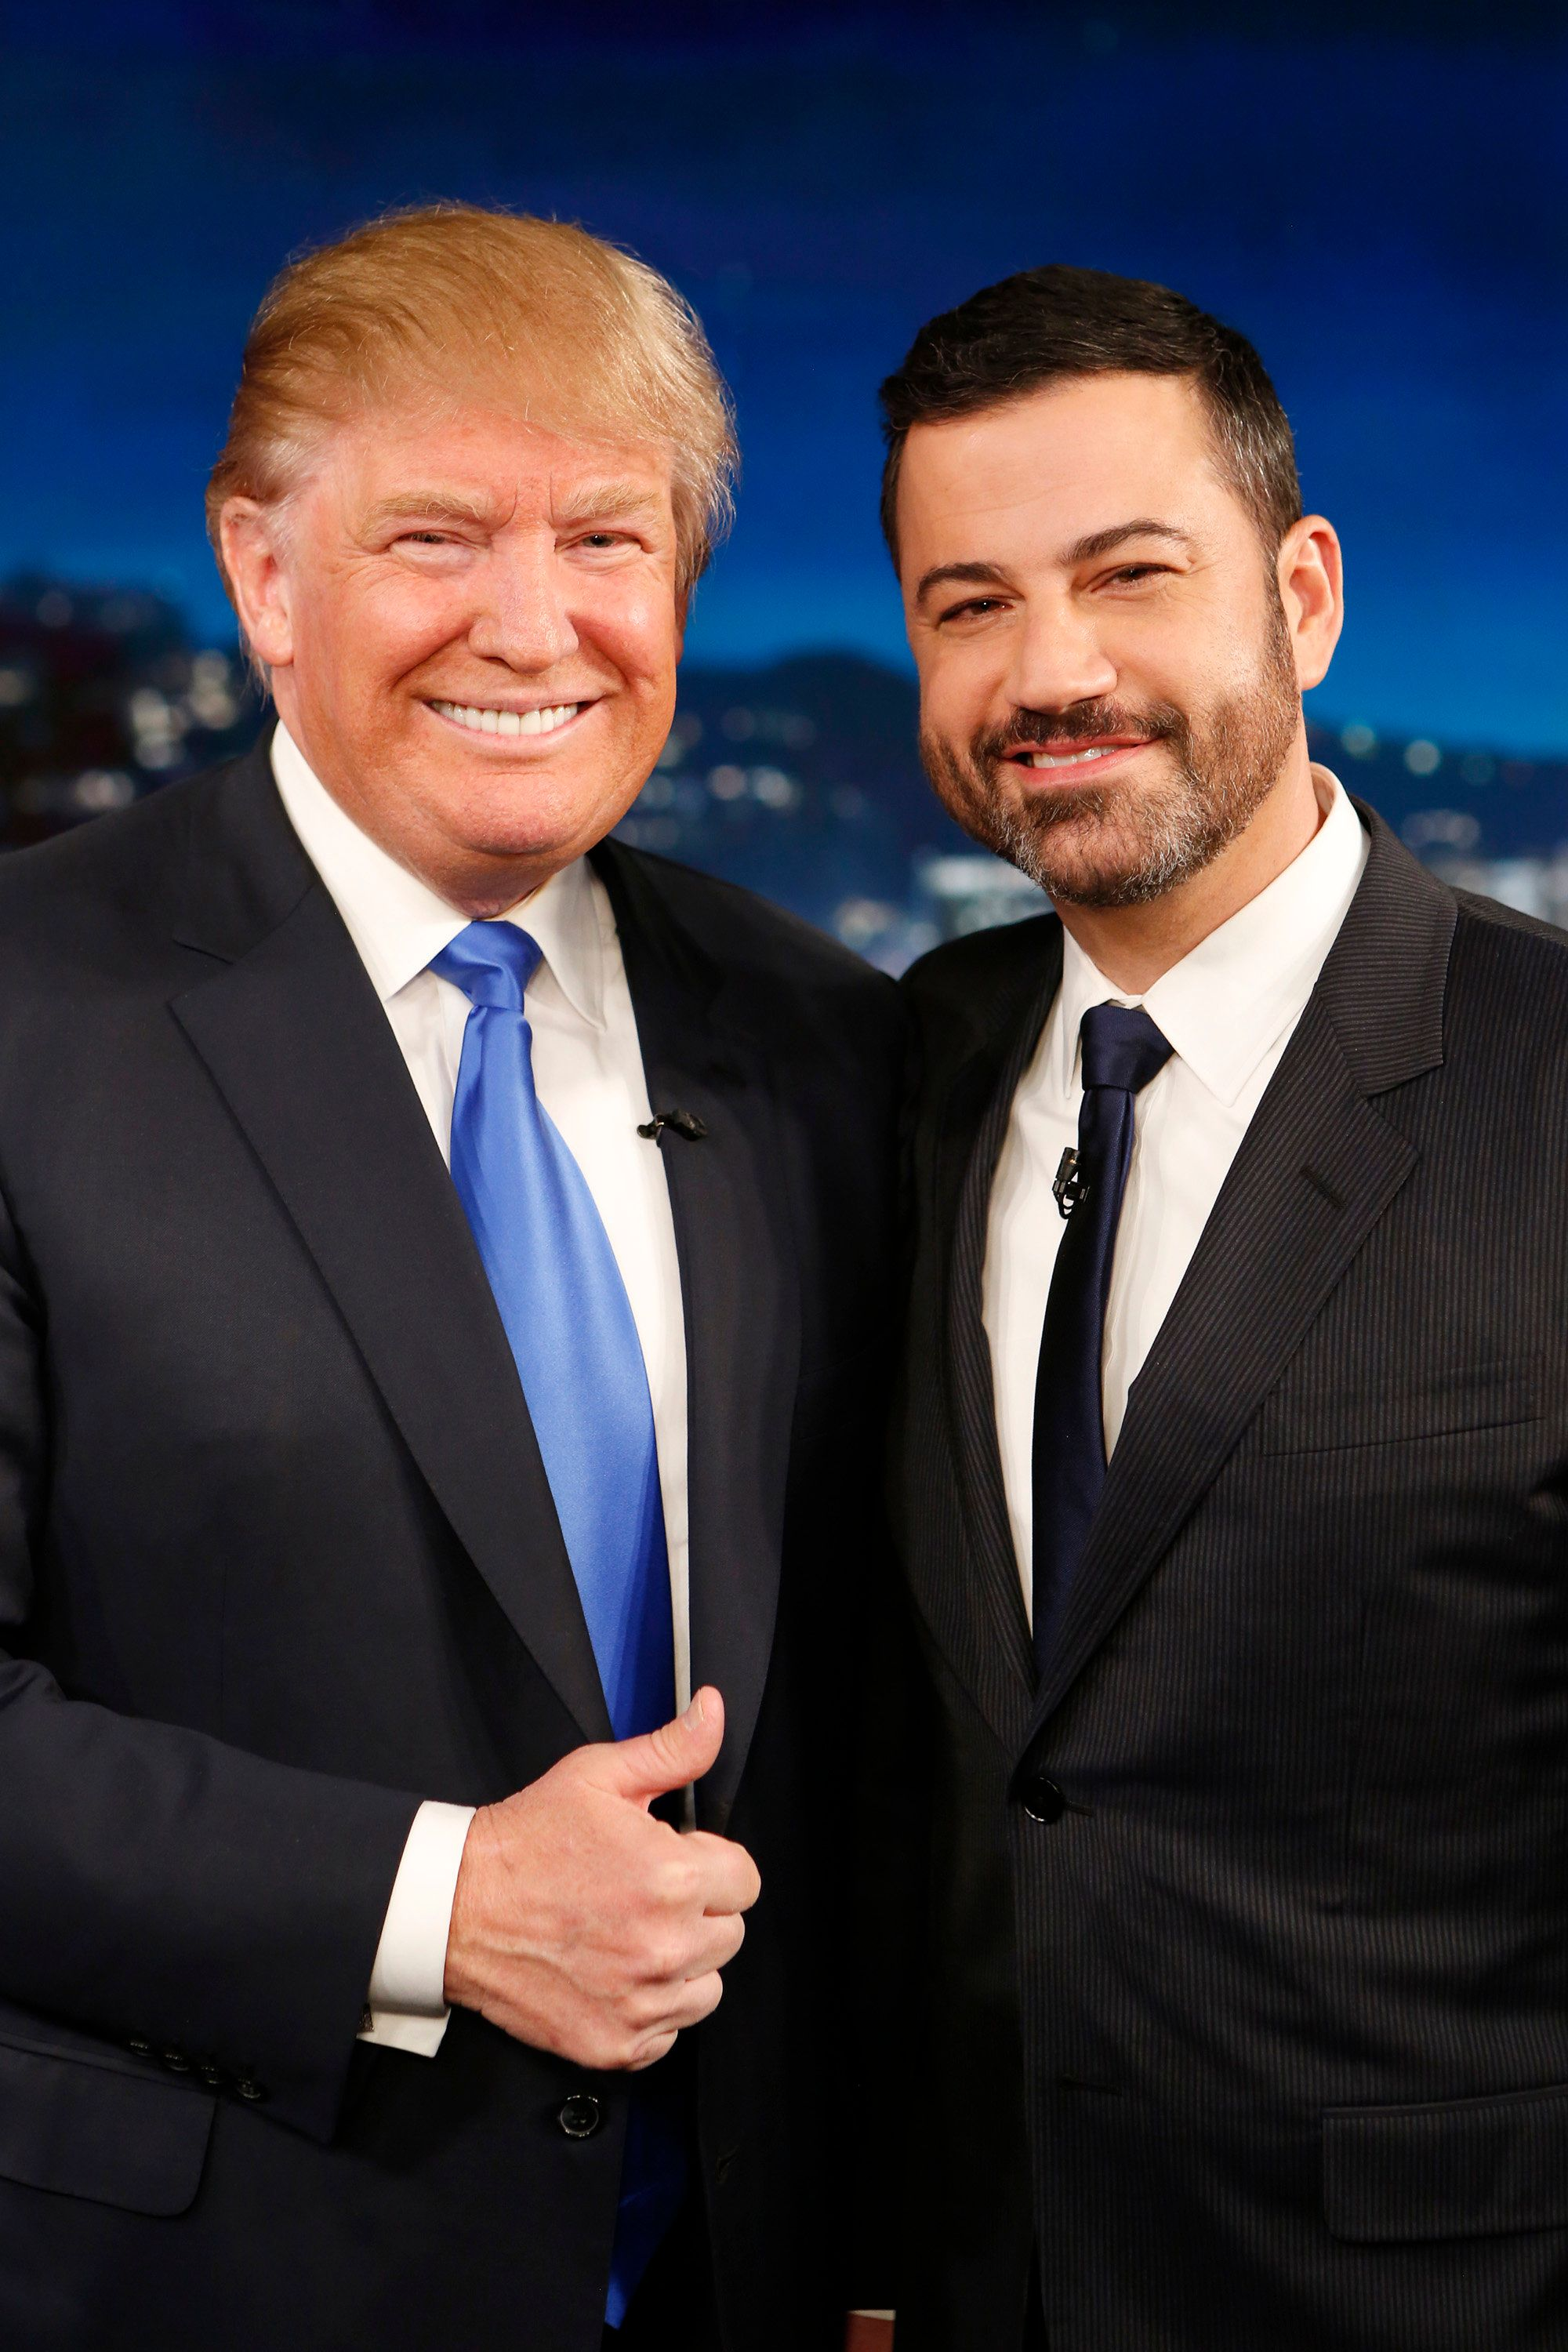 JIMMY KIMMEL LIVE - Emmy Award-nominated 'Jimmy Kimmel Live' airs every weeknight (11:35 p.m. - 12:41 a.m., ET),  packed with hilarious comedy bits and features a diverse lineup of guests including celebrities, athletes, musicians, comedians and humorous human interest subjects. The guests for Wednesday, December 16 included Republican Presidential candidate Donald Trump and musical guest Gary Clark Jr. (Photo by Randy Holmes/ABC via Getty Images) DONALD TRUMP, JIMMY KIMMEL